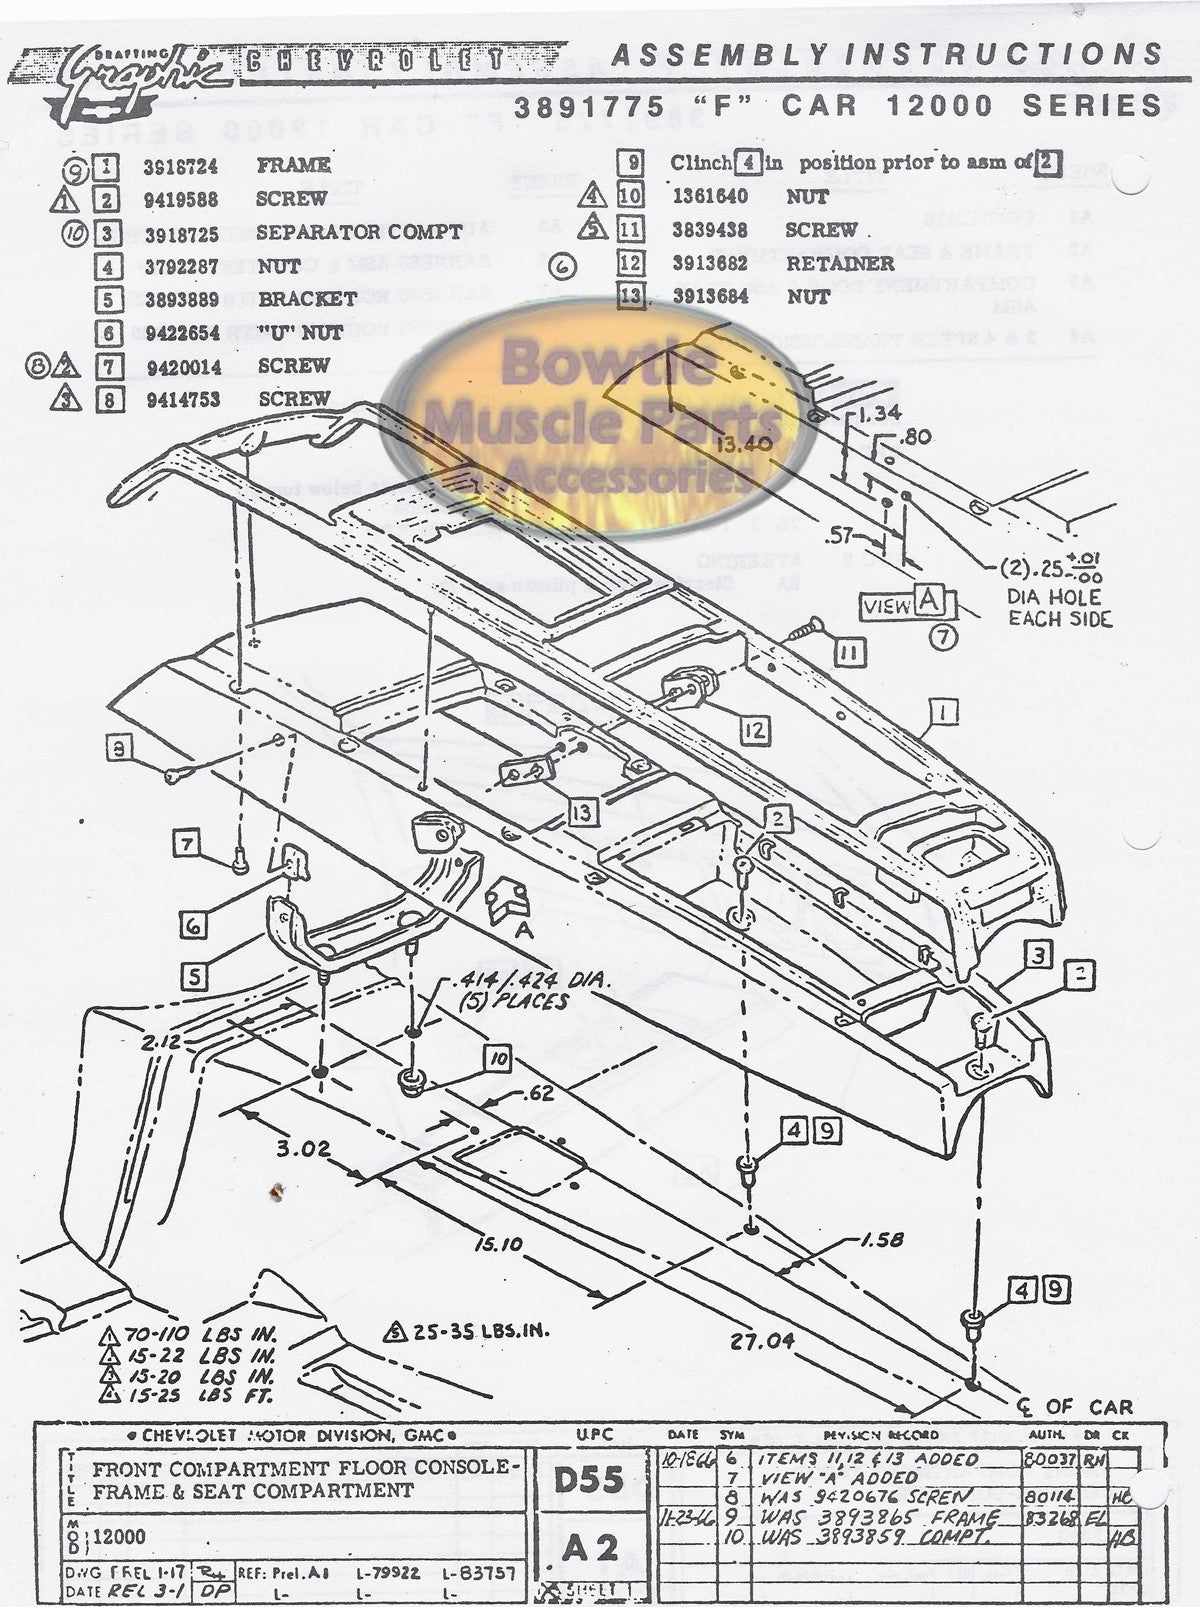 v type engine diagram auto electrical wiring diagram 2002 Honda Civic Wiring Diagram 1972 72 chevelle malibu el camino monte carlo ss factory